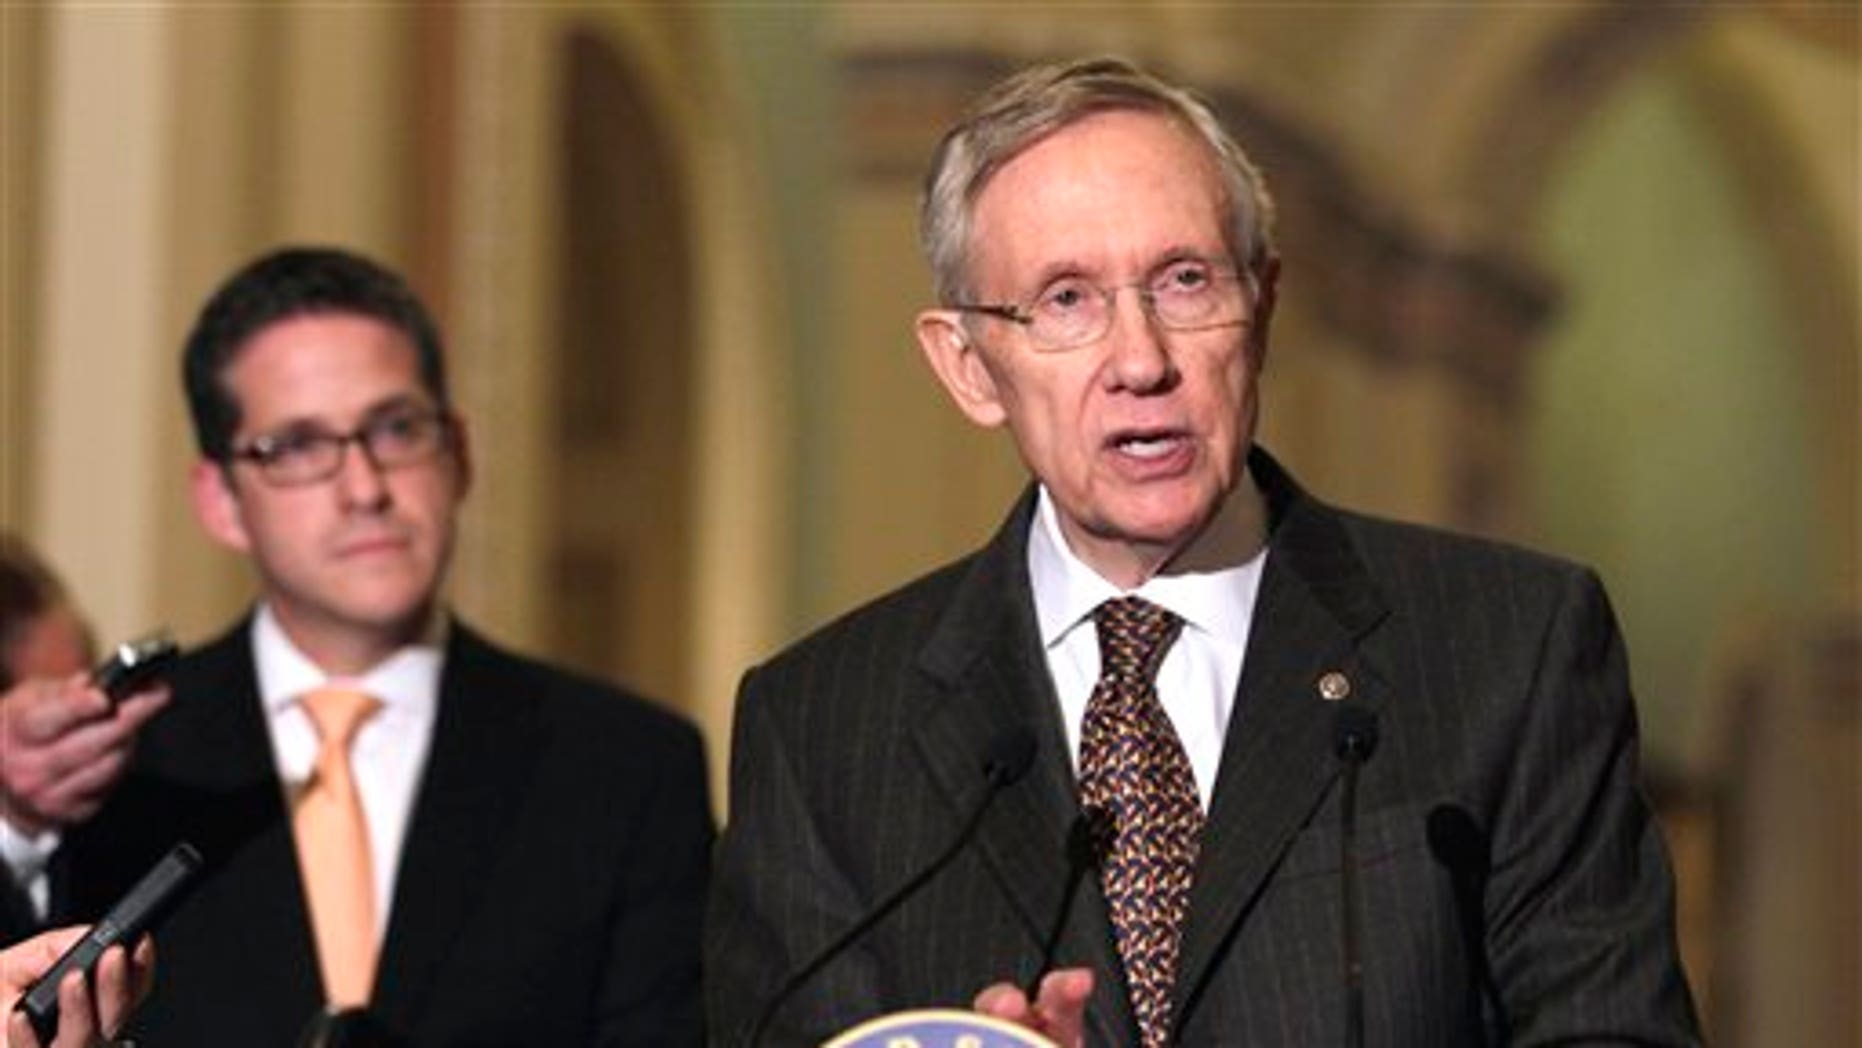 April 12: Senate Majority Leader Harry Reid of Nev. speaks to media on Capitol Hill in Washington.